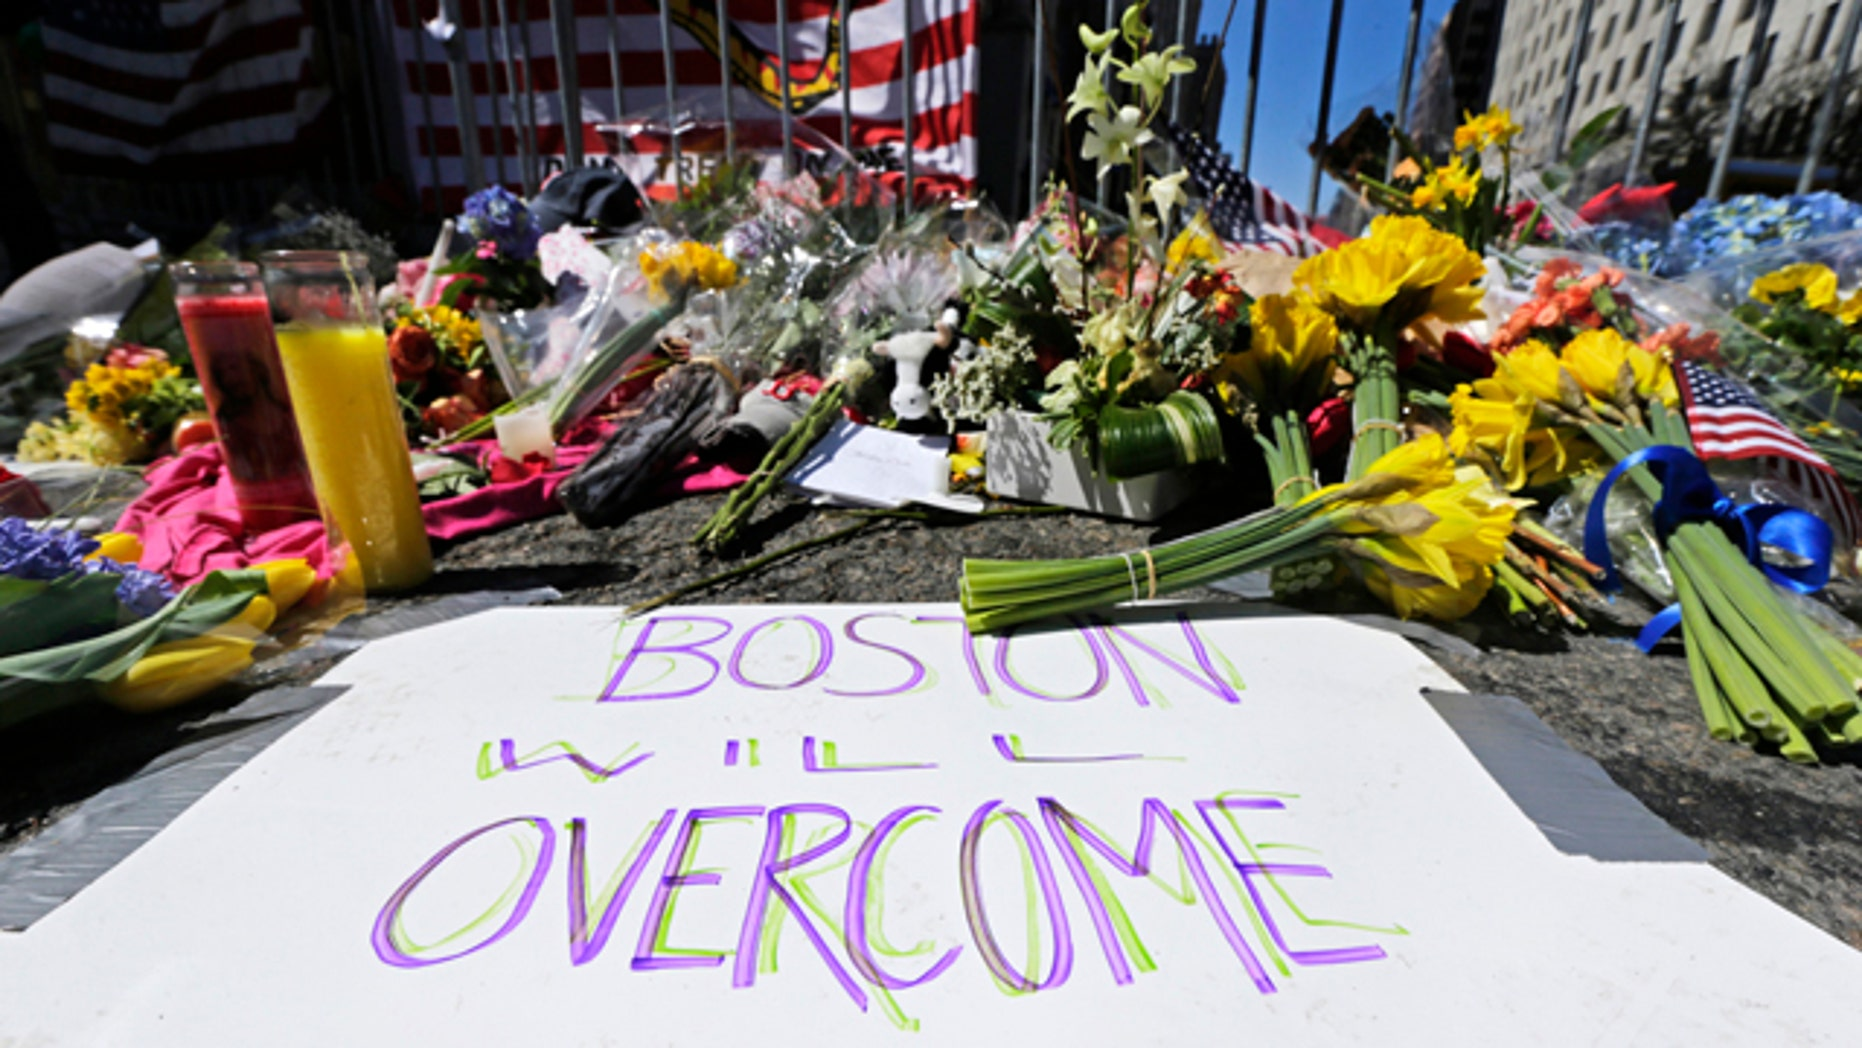 FILE  - In this April 17, 2013 photograph, flowers and signs adorn a barrier at Boylston Street near the of finish line of the Boston Marathon at a makeshift memorial for victims and survivors of the bombing. Boston will mark the second anniversary of the 2013 marathon bombings Wednesday with a subdued remembrance that includes a moment of silence, the pealing of church bells and a call for kindness. (AP Photo/Charles Krupa, File)